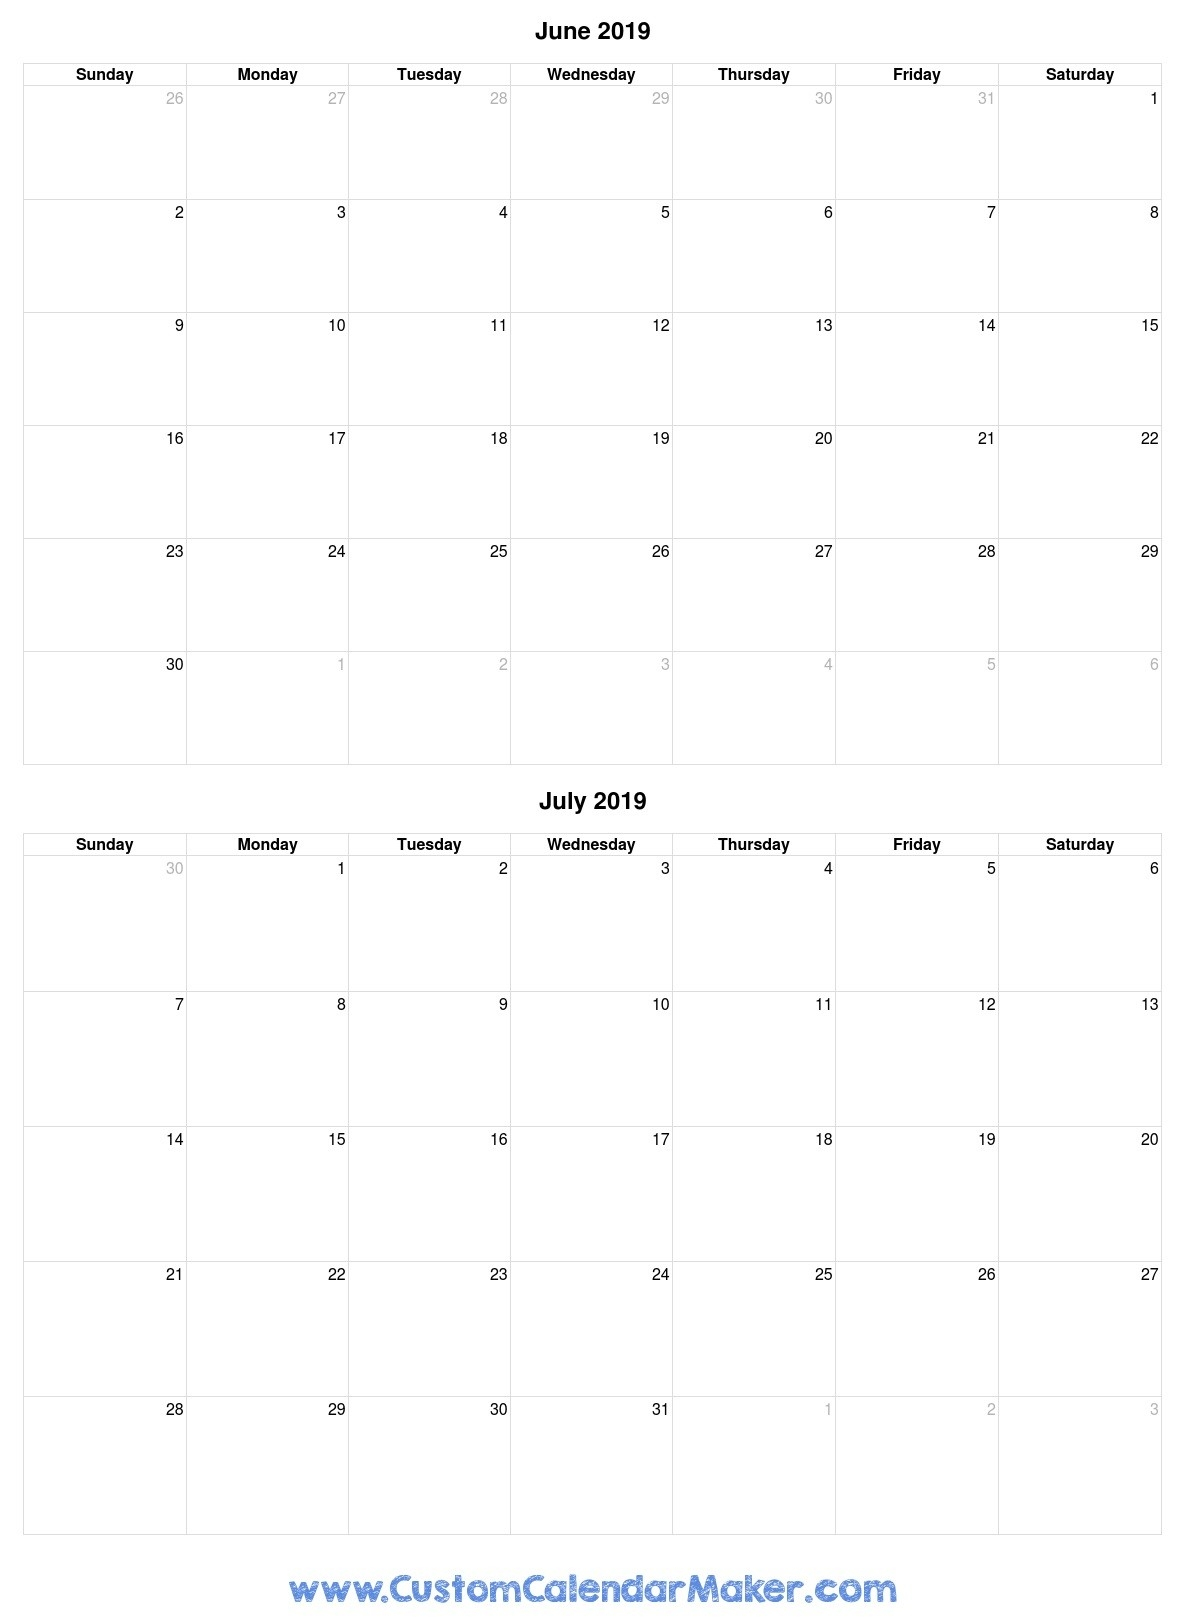 June And July 2019 Free Printable Calendar Template-Month Of June And July Blank Calendar